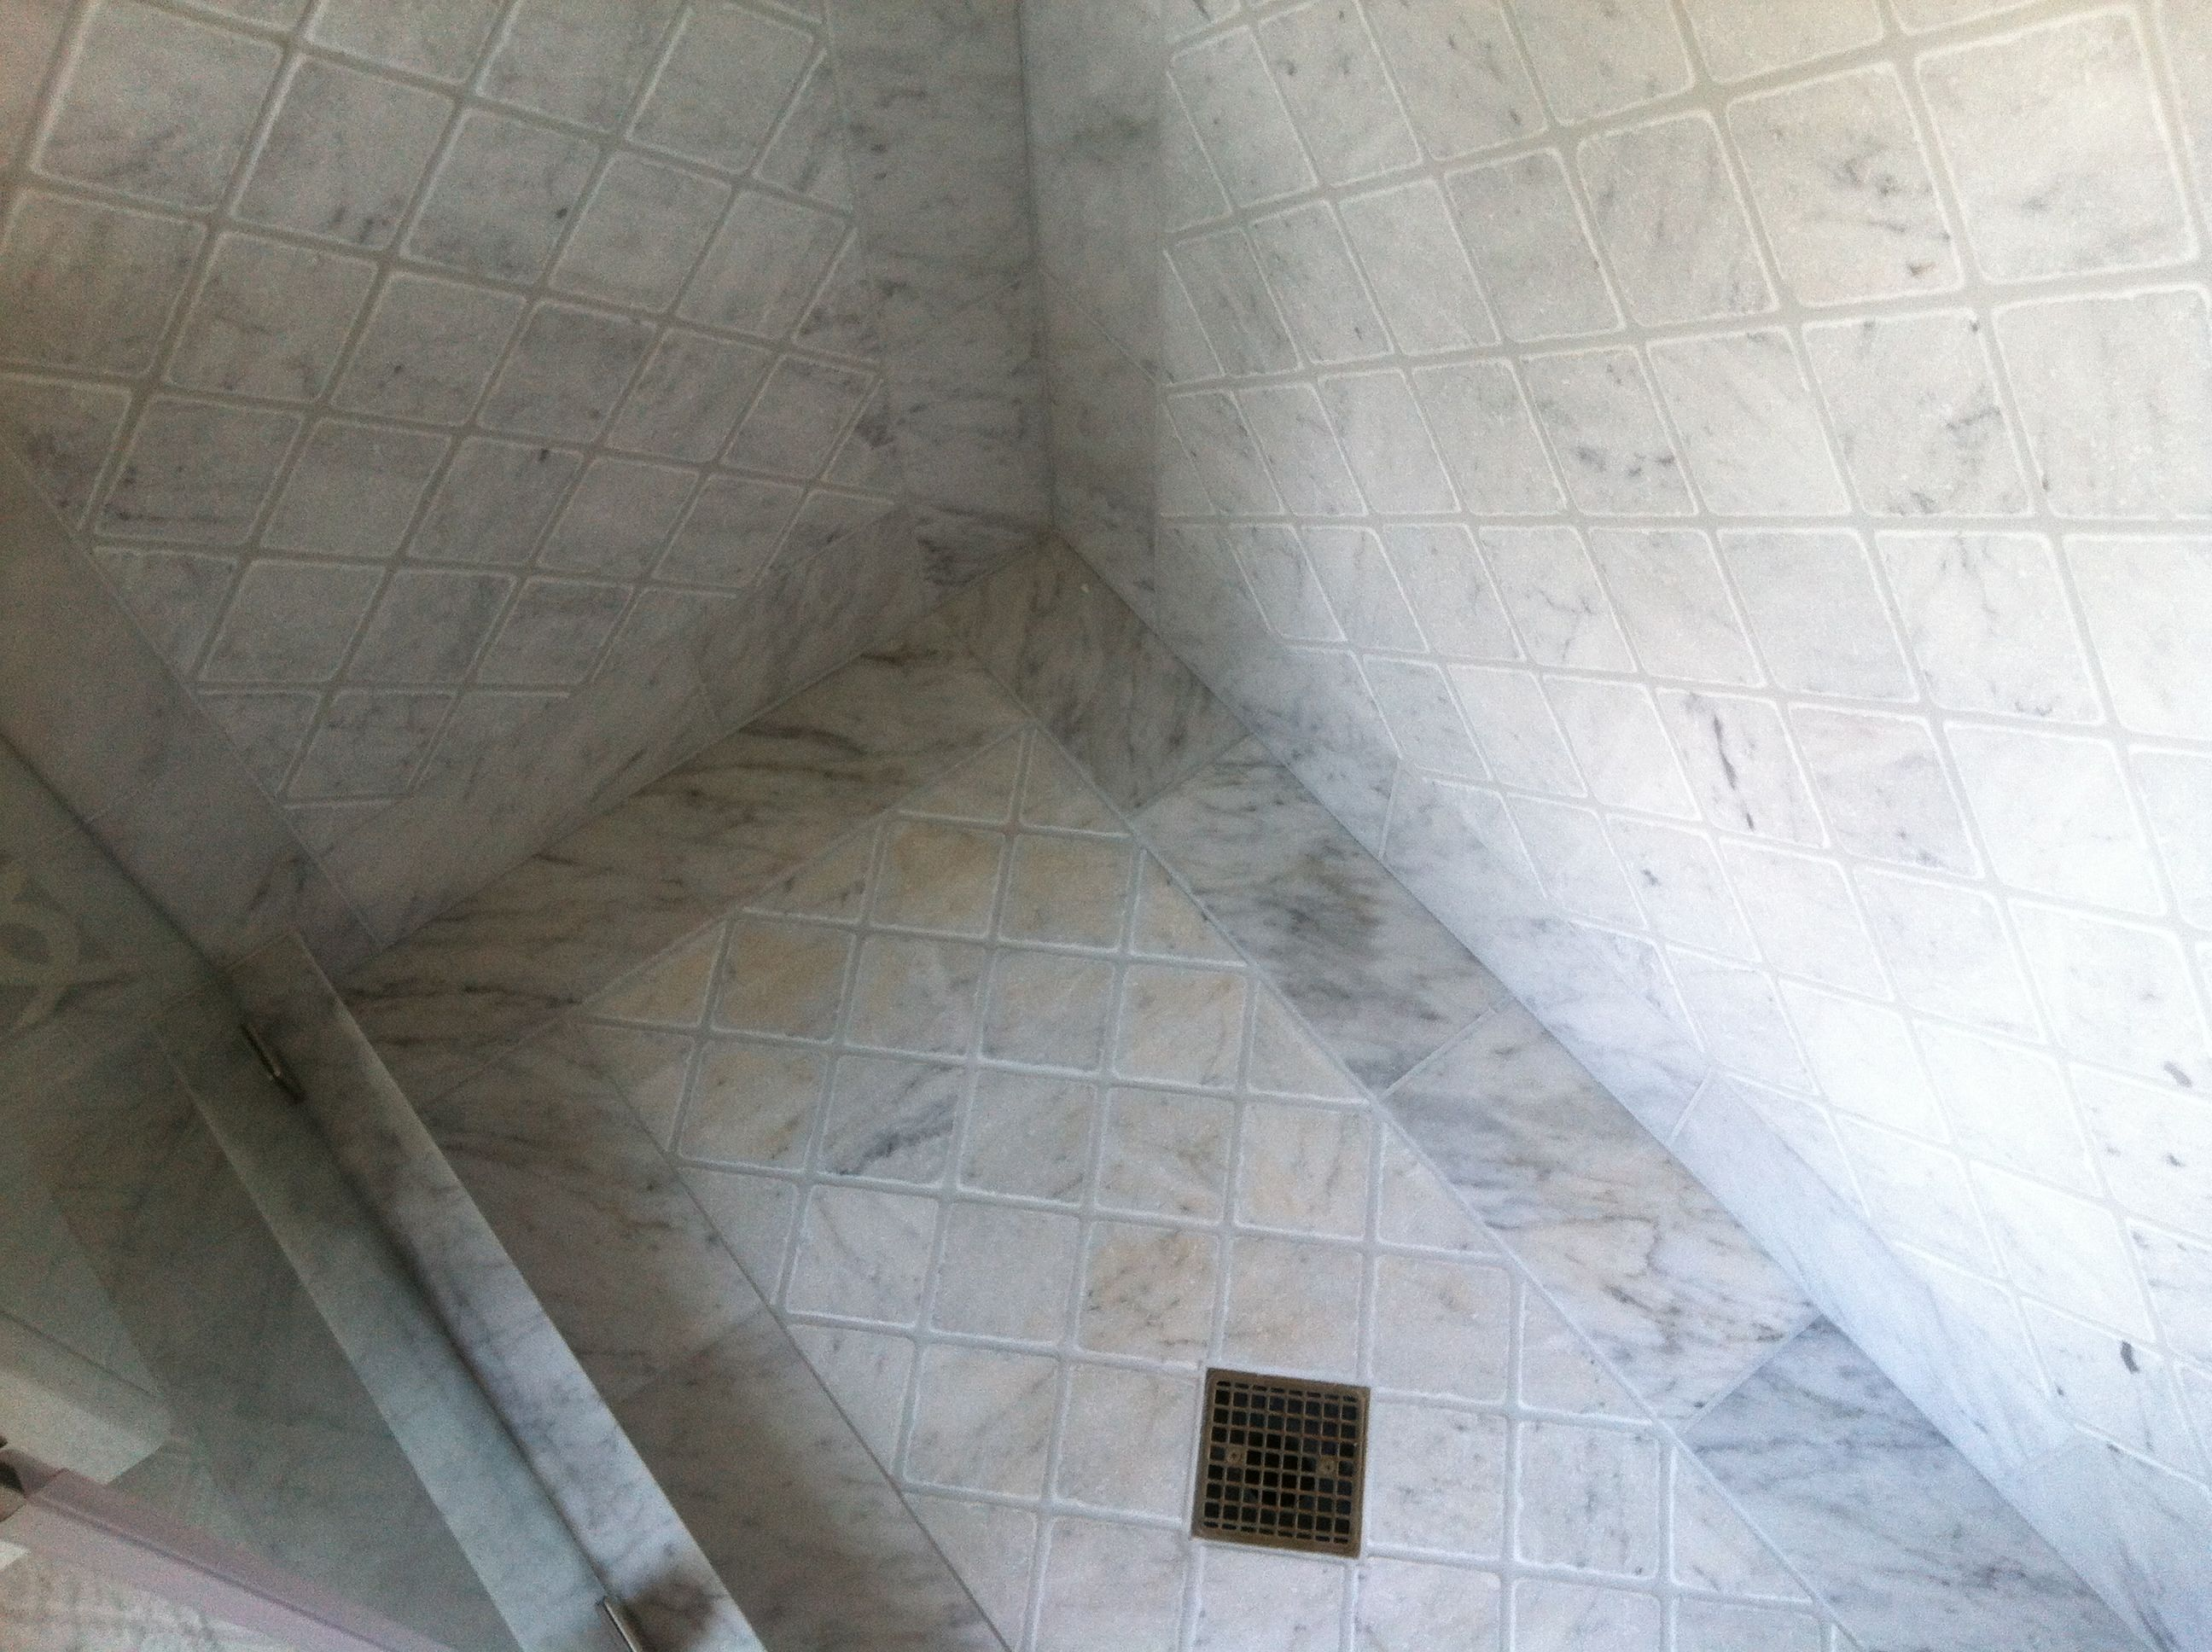 Bathroom Remodeling Lehigh Valley Pa : Bathroom remodeling photos malozzi tile marble lehigh